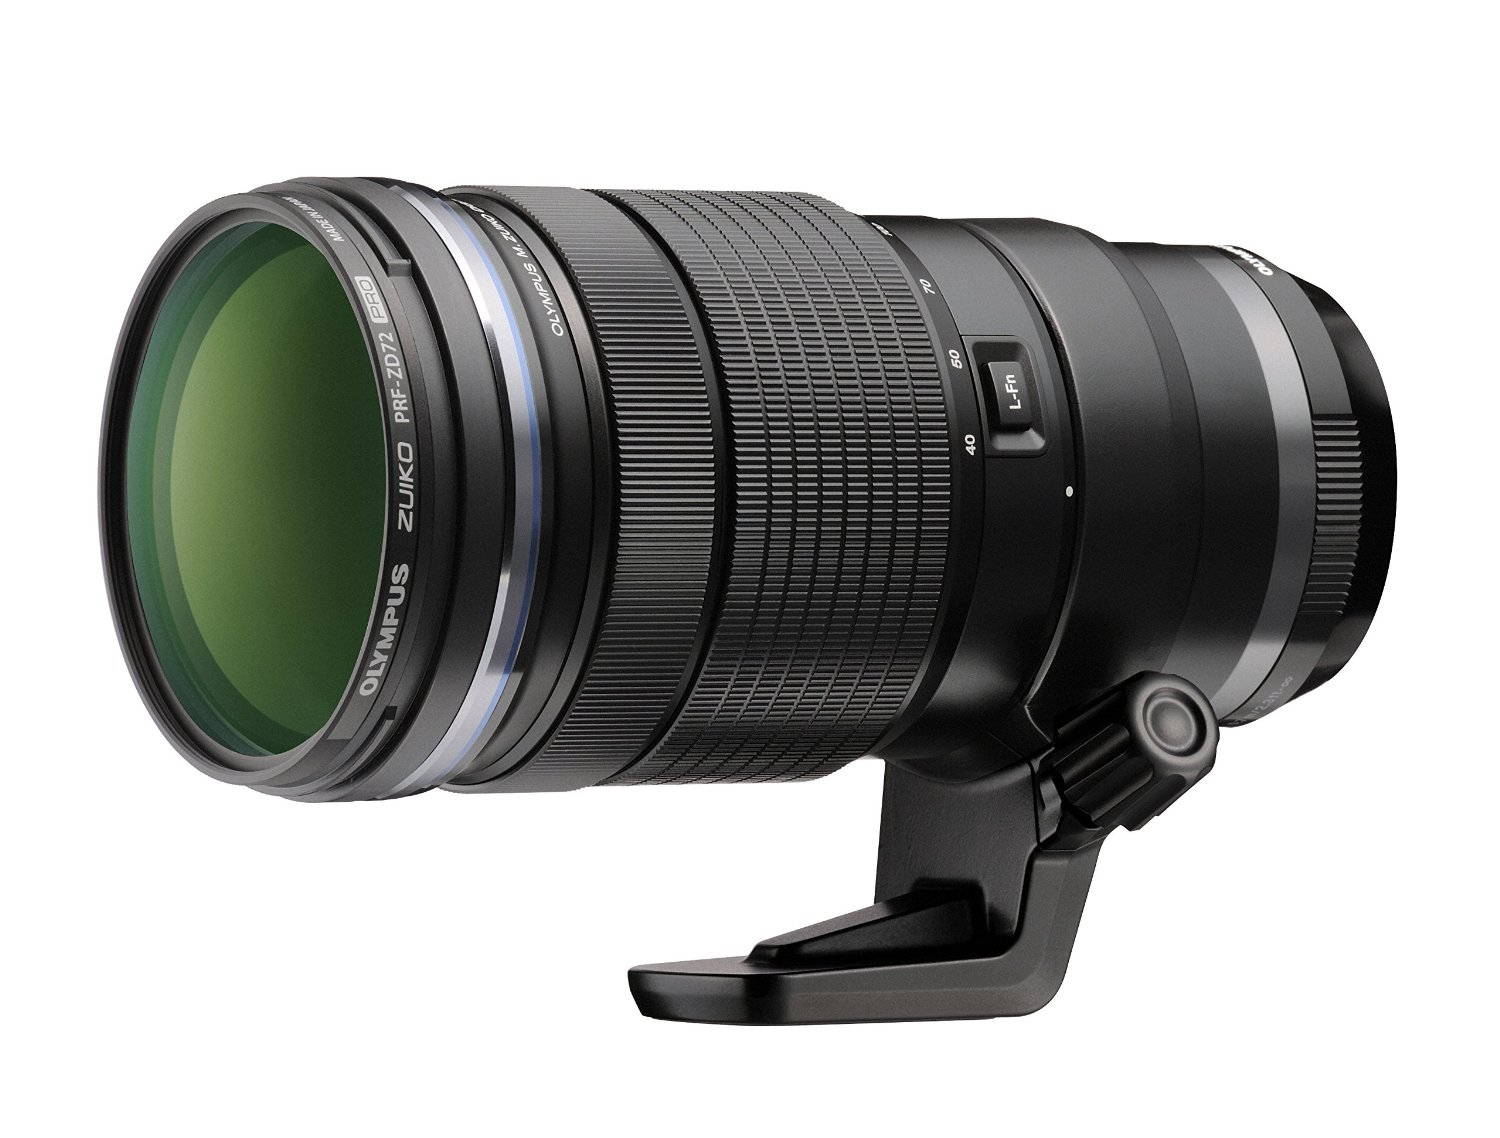 This [telephoto zoom](https://www.amazon.com/Olympus-M-ZUIKO-40-150mm-Interchangeable-Panasonic/dp/B00NGSLSK4?SubscriptionId=AKIAJ7T5BOVUVRD2EFYQ&linkCode=xm2&creativeASIN=B00NGSLSK4&creative=165953&tag=toolstoysdeals-20&camp=2025&ie=UTF8) lens rounds out the list of sales on Olympus' PRO lens lineup.